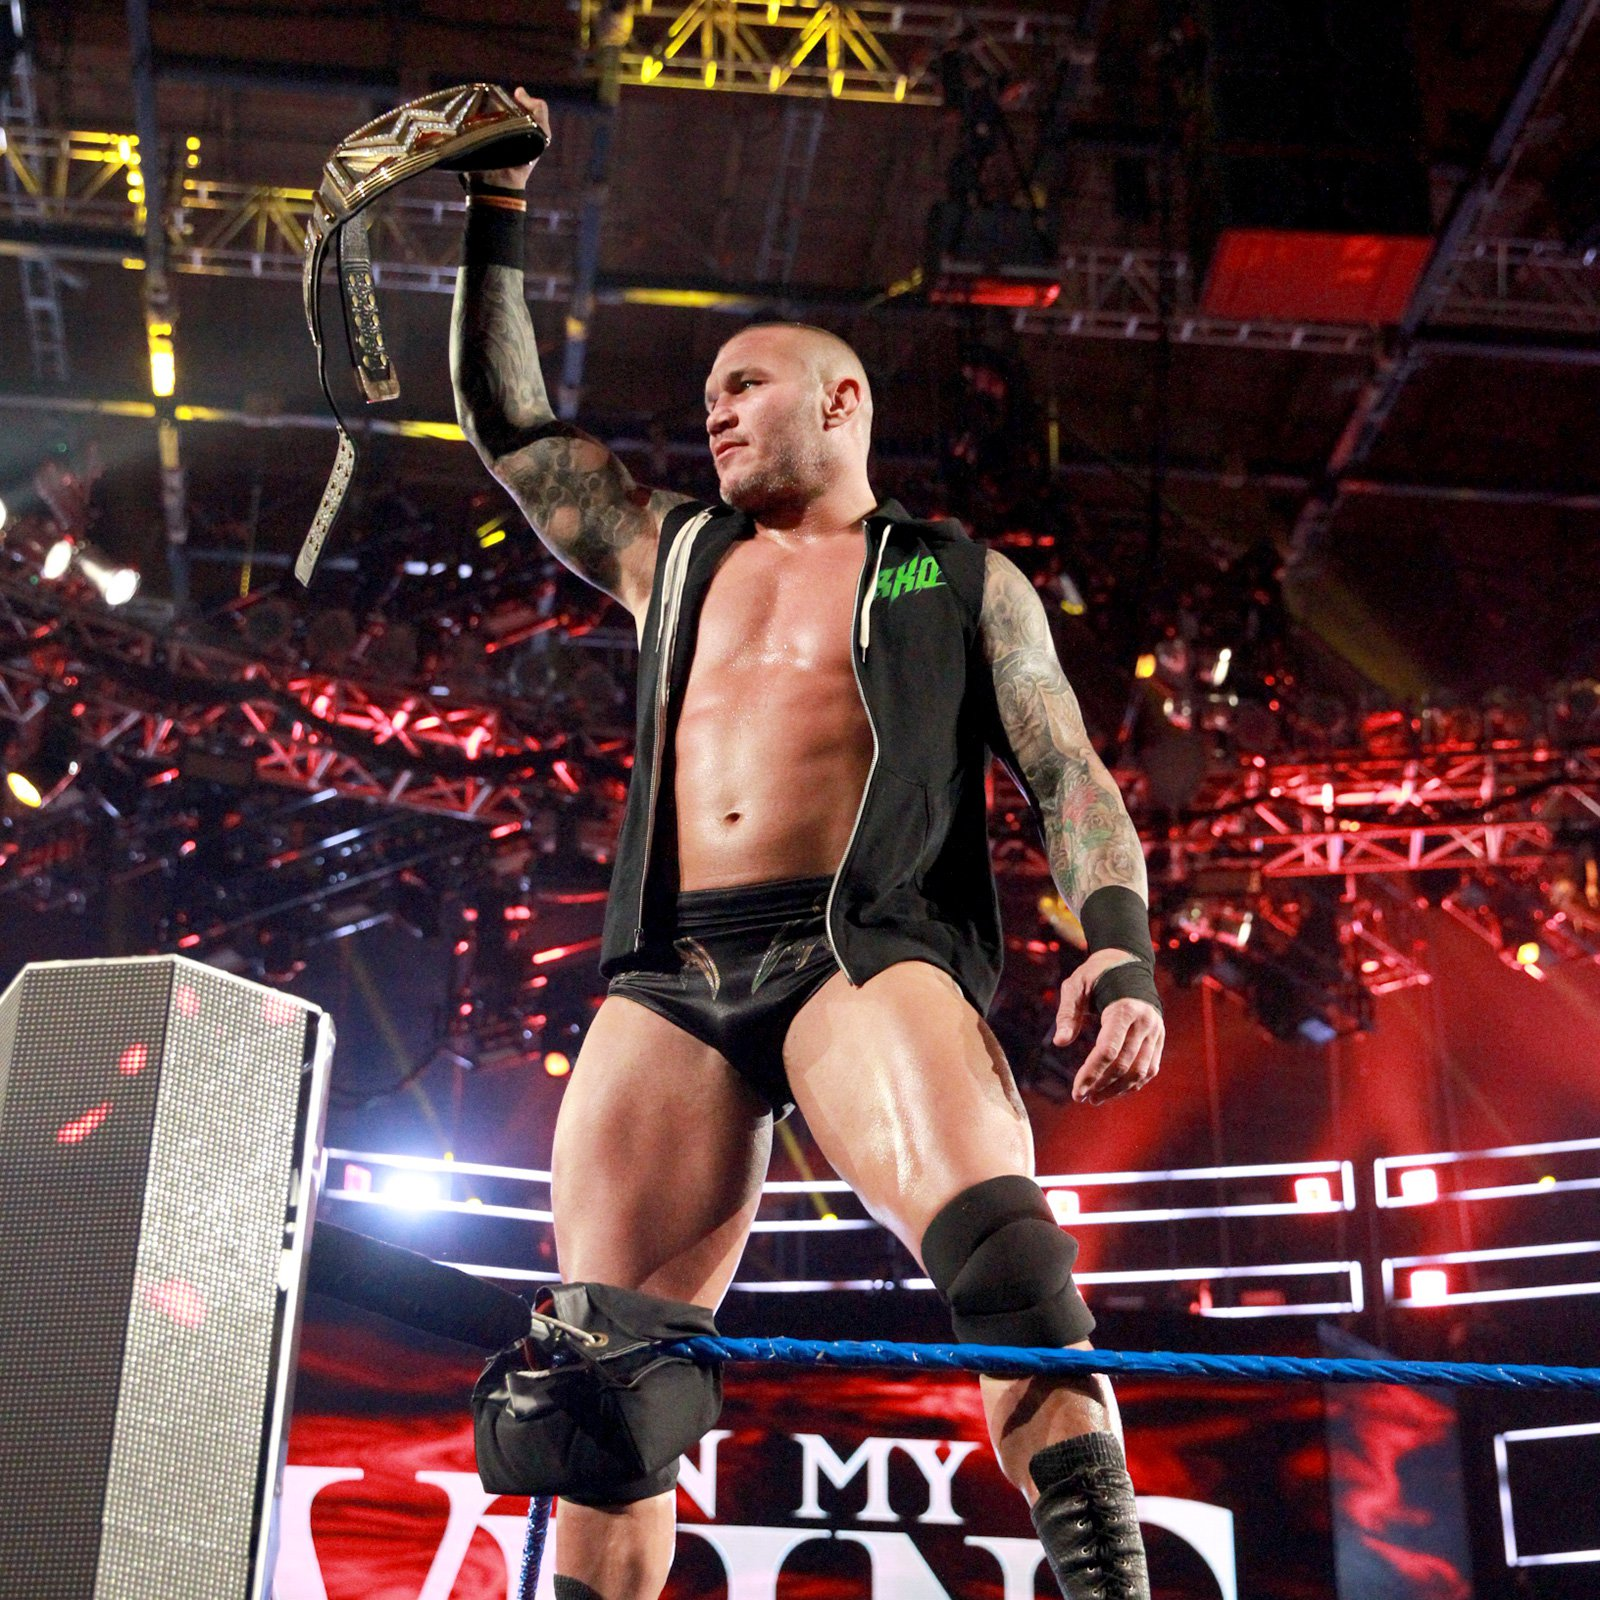 WWE Champion Randy Orton is prepared to defend his title at all costs.